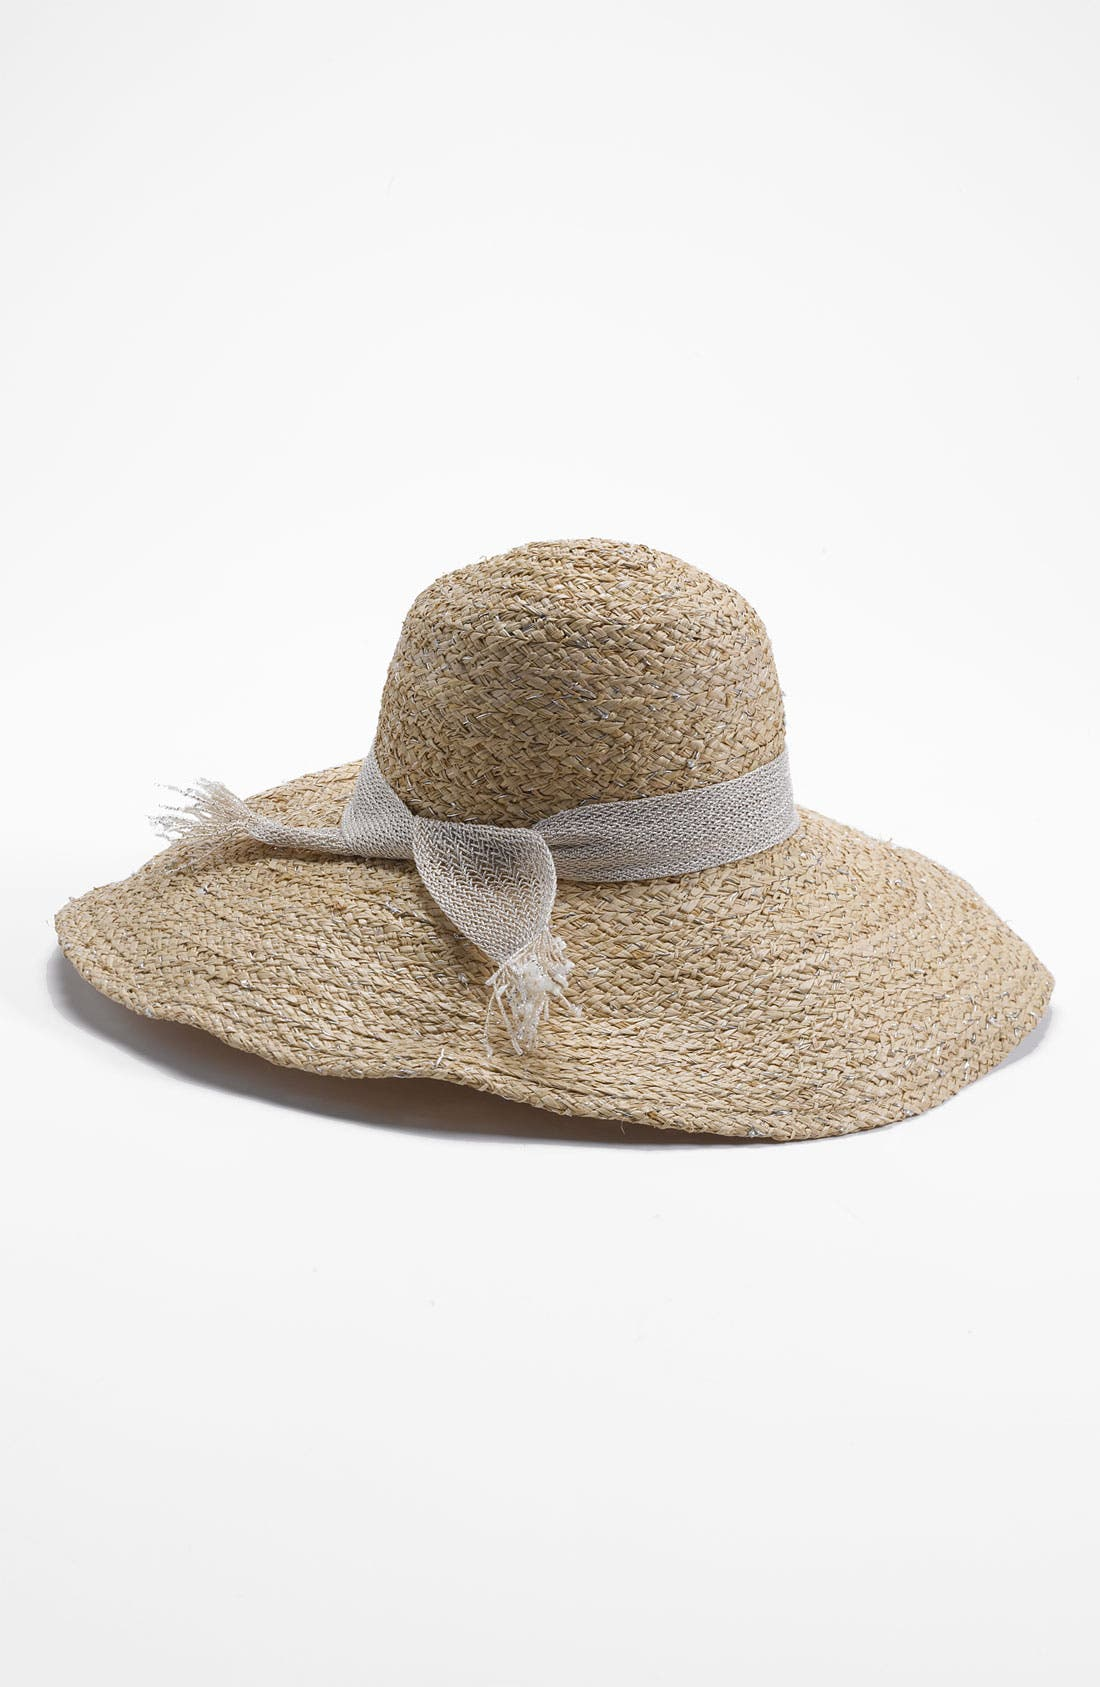 Alternate Image 1 Selected - Hat Attack Metallic Raffia Sun Hat